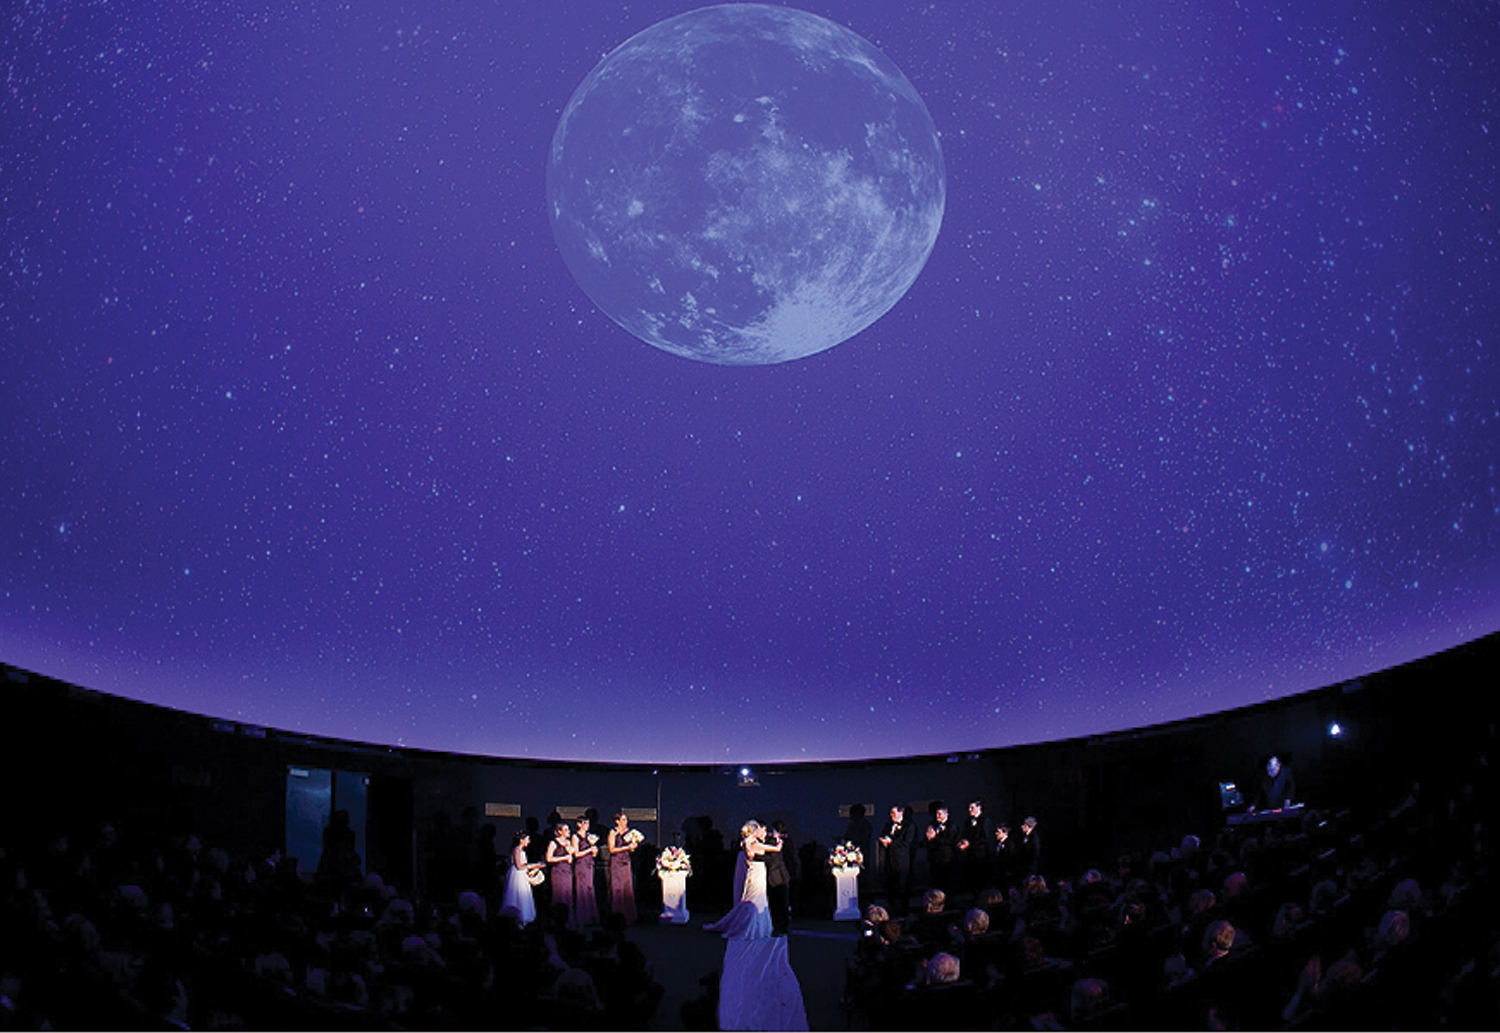 Wedding Venue Spotlight: Get Married At The Franklin Institute